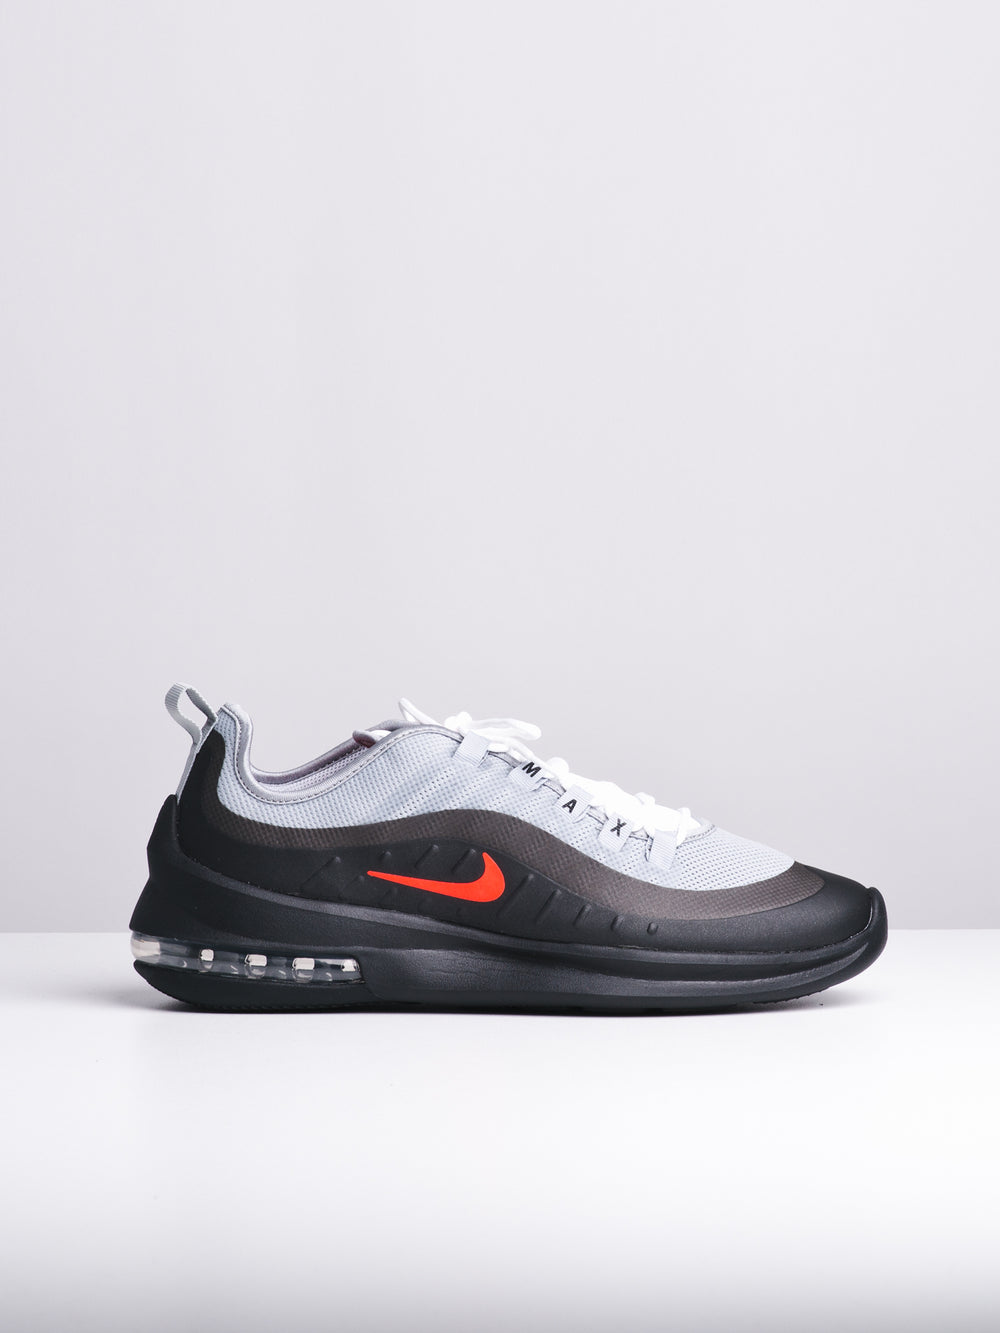 MENS AIR MAX AXIS GREY/CRIMSON SNEAKERS